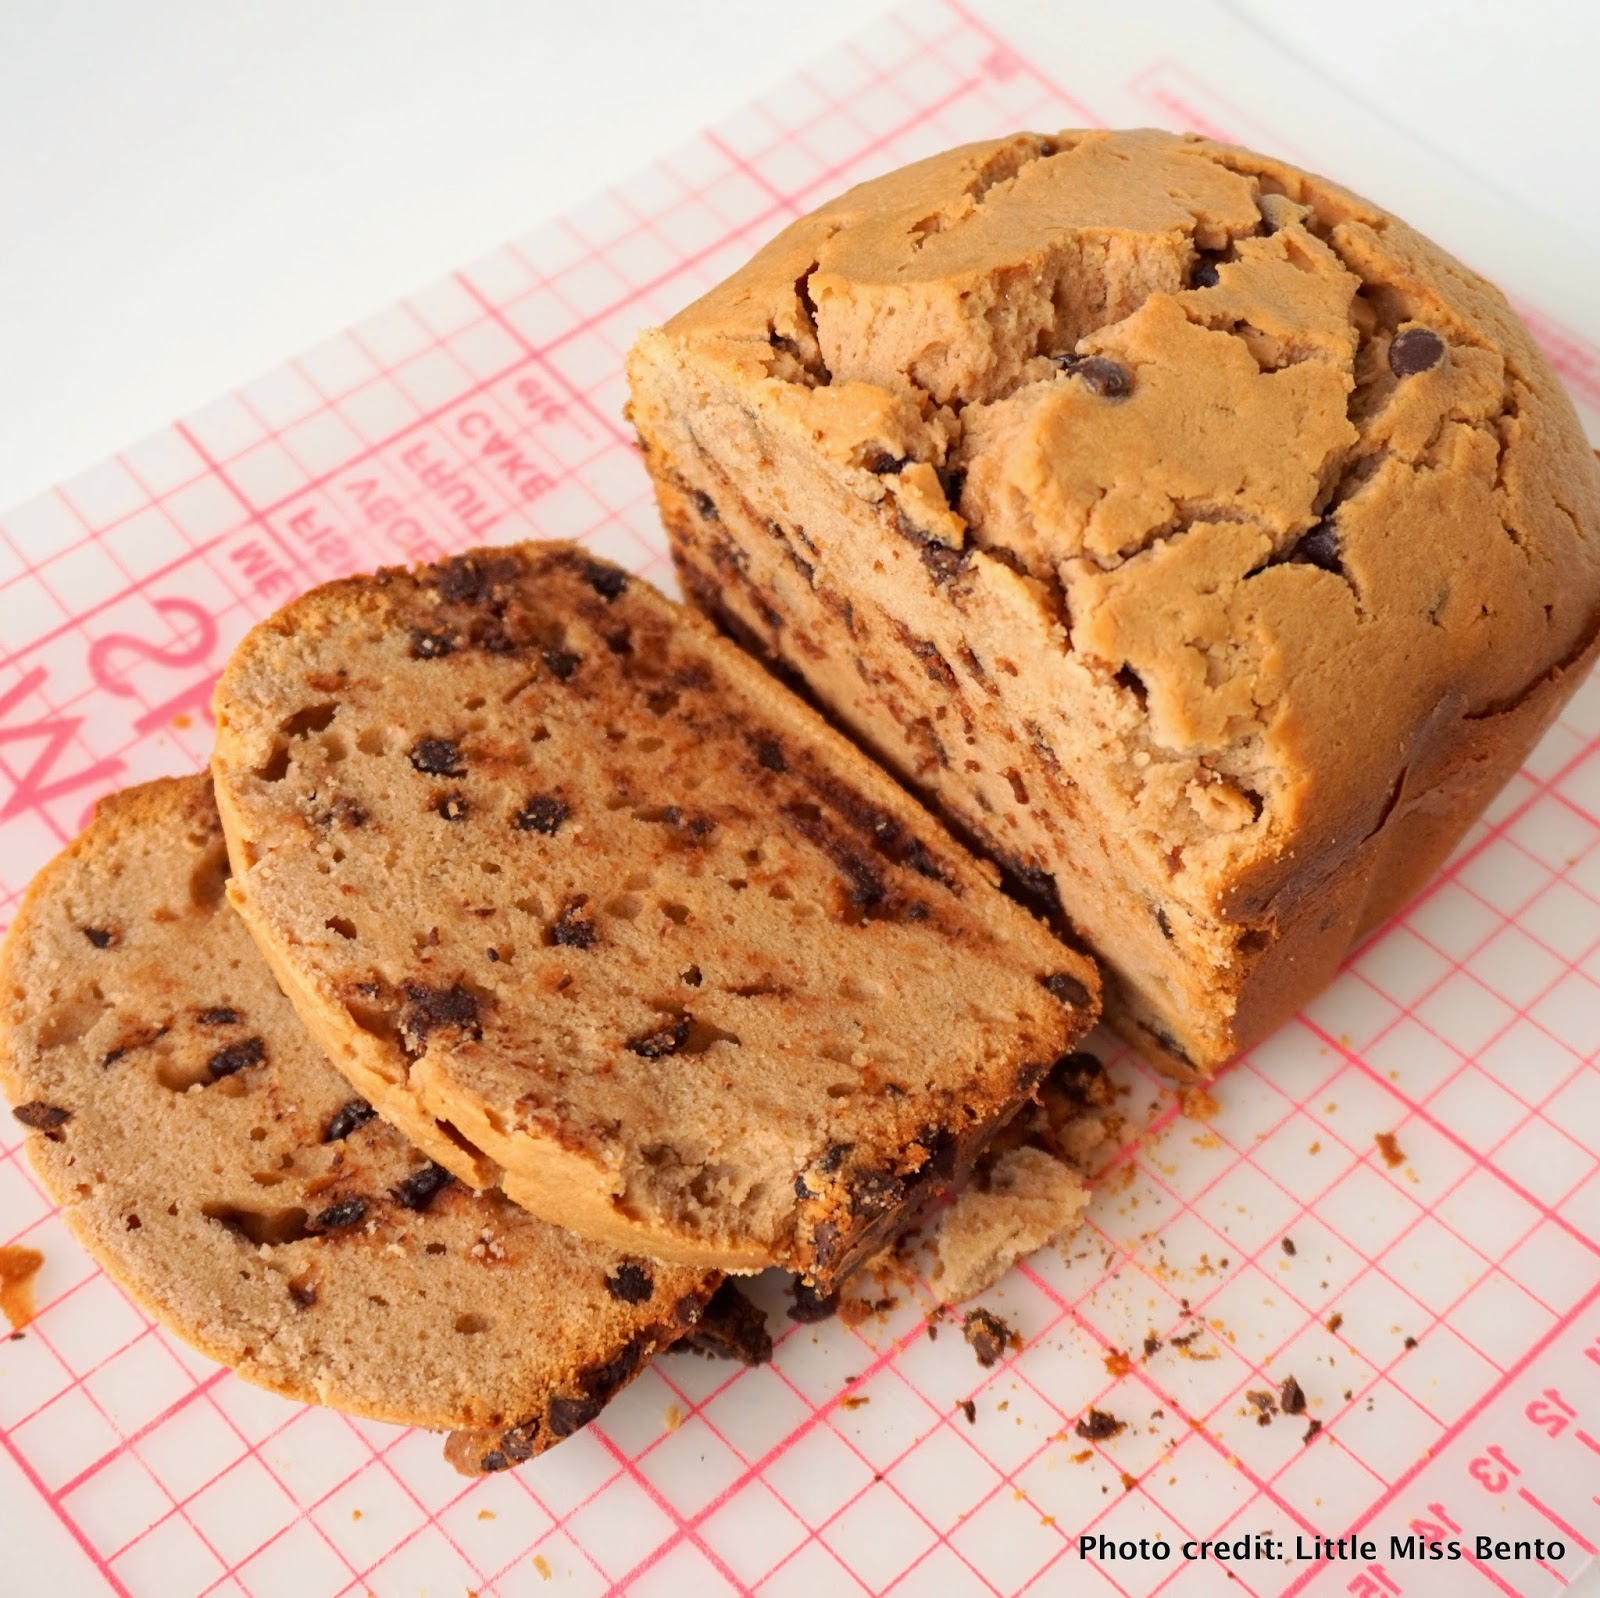 Panasonic Bread Maker Cake Recipes